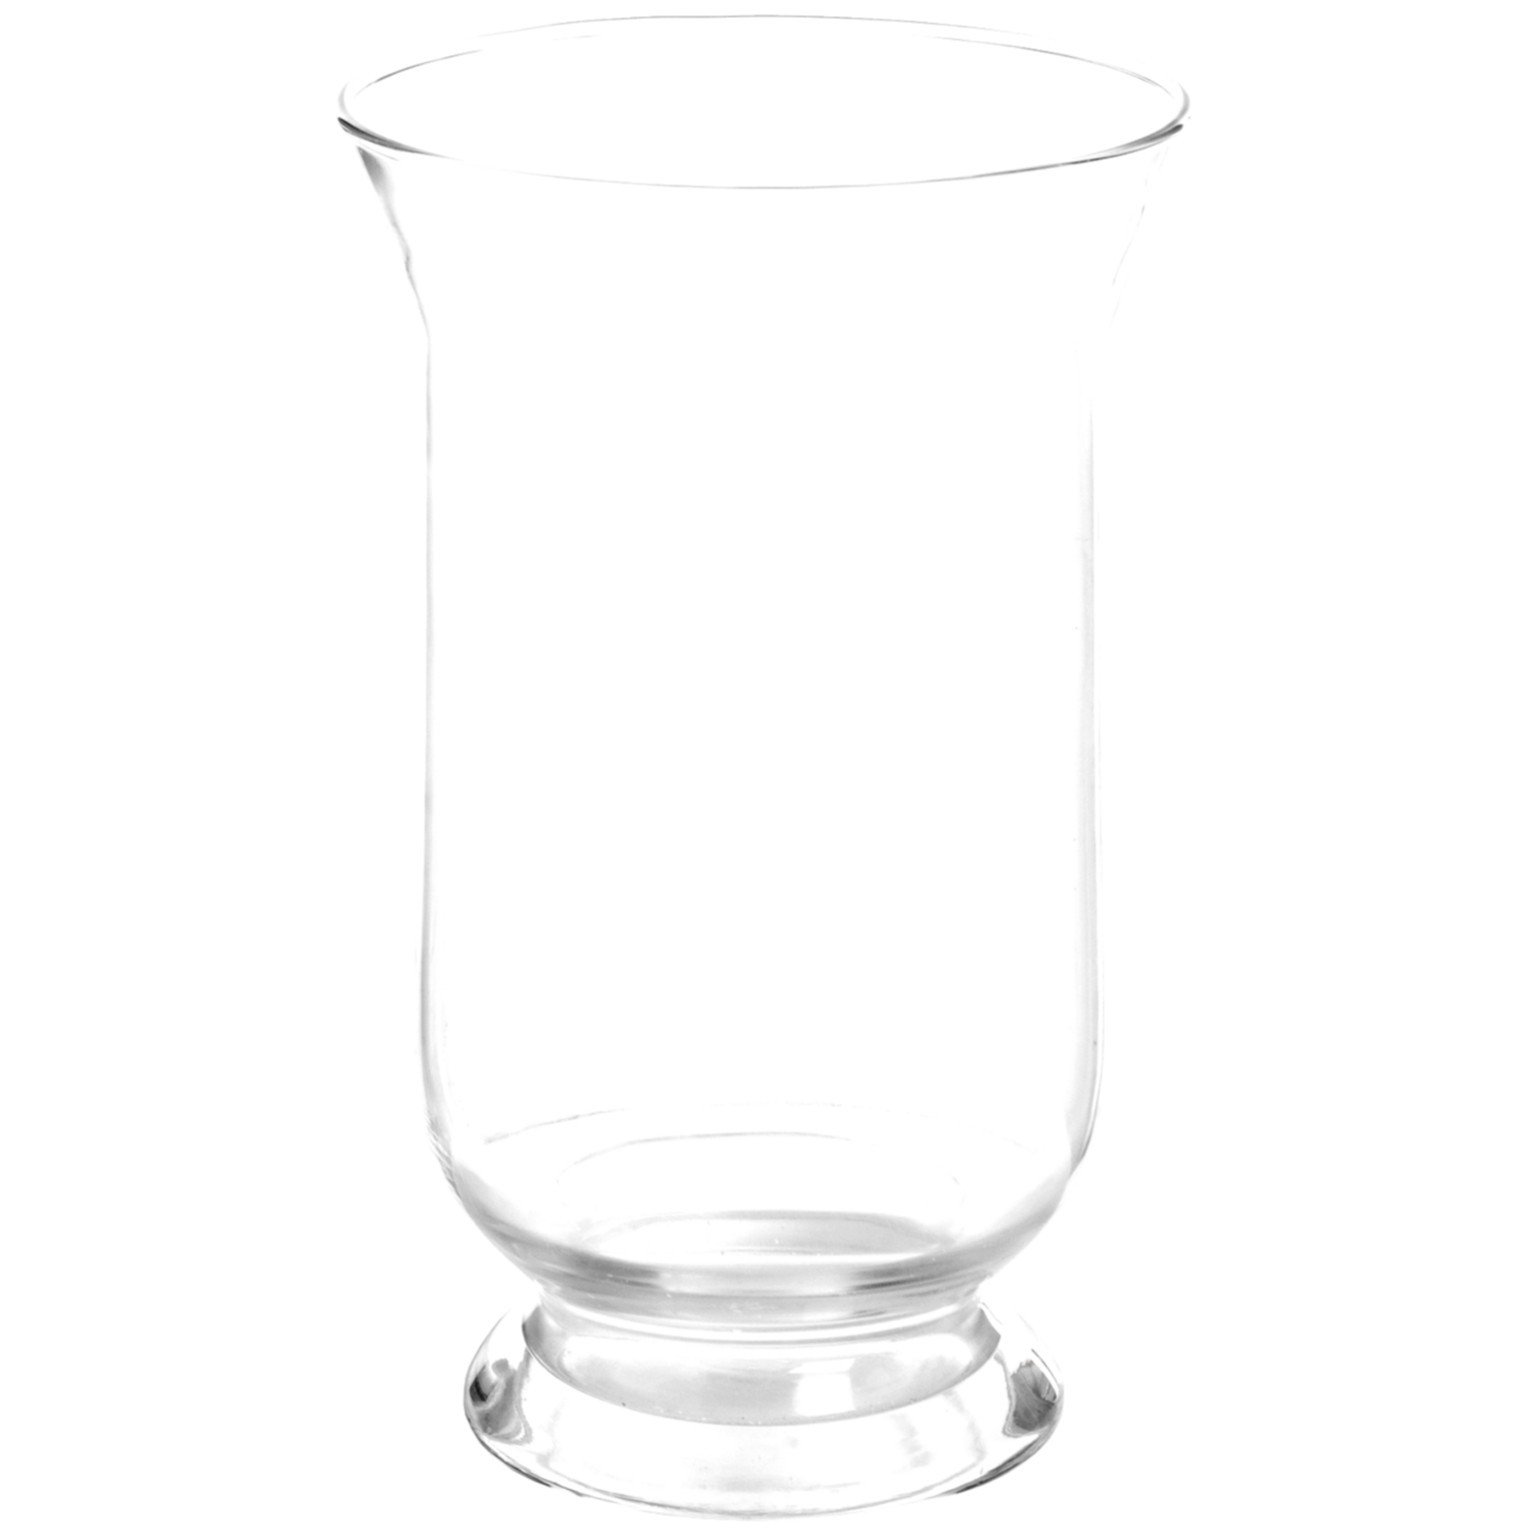 wholesale vases for sale of why you should not go to glass vases wholesale glass vases with regard to large hurricane vases wholesale glass vases wholesale